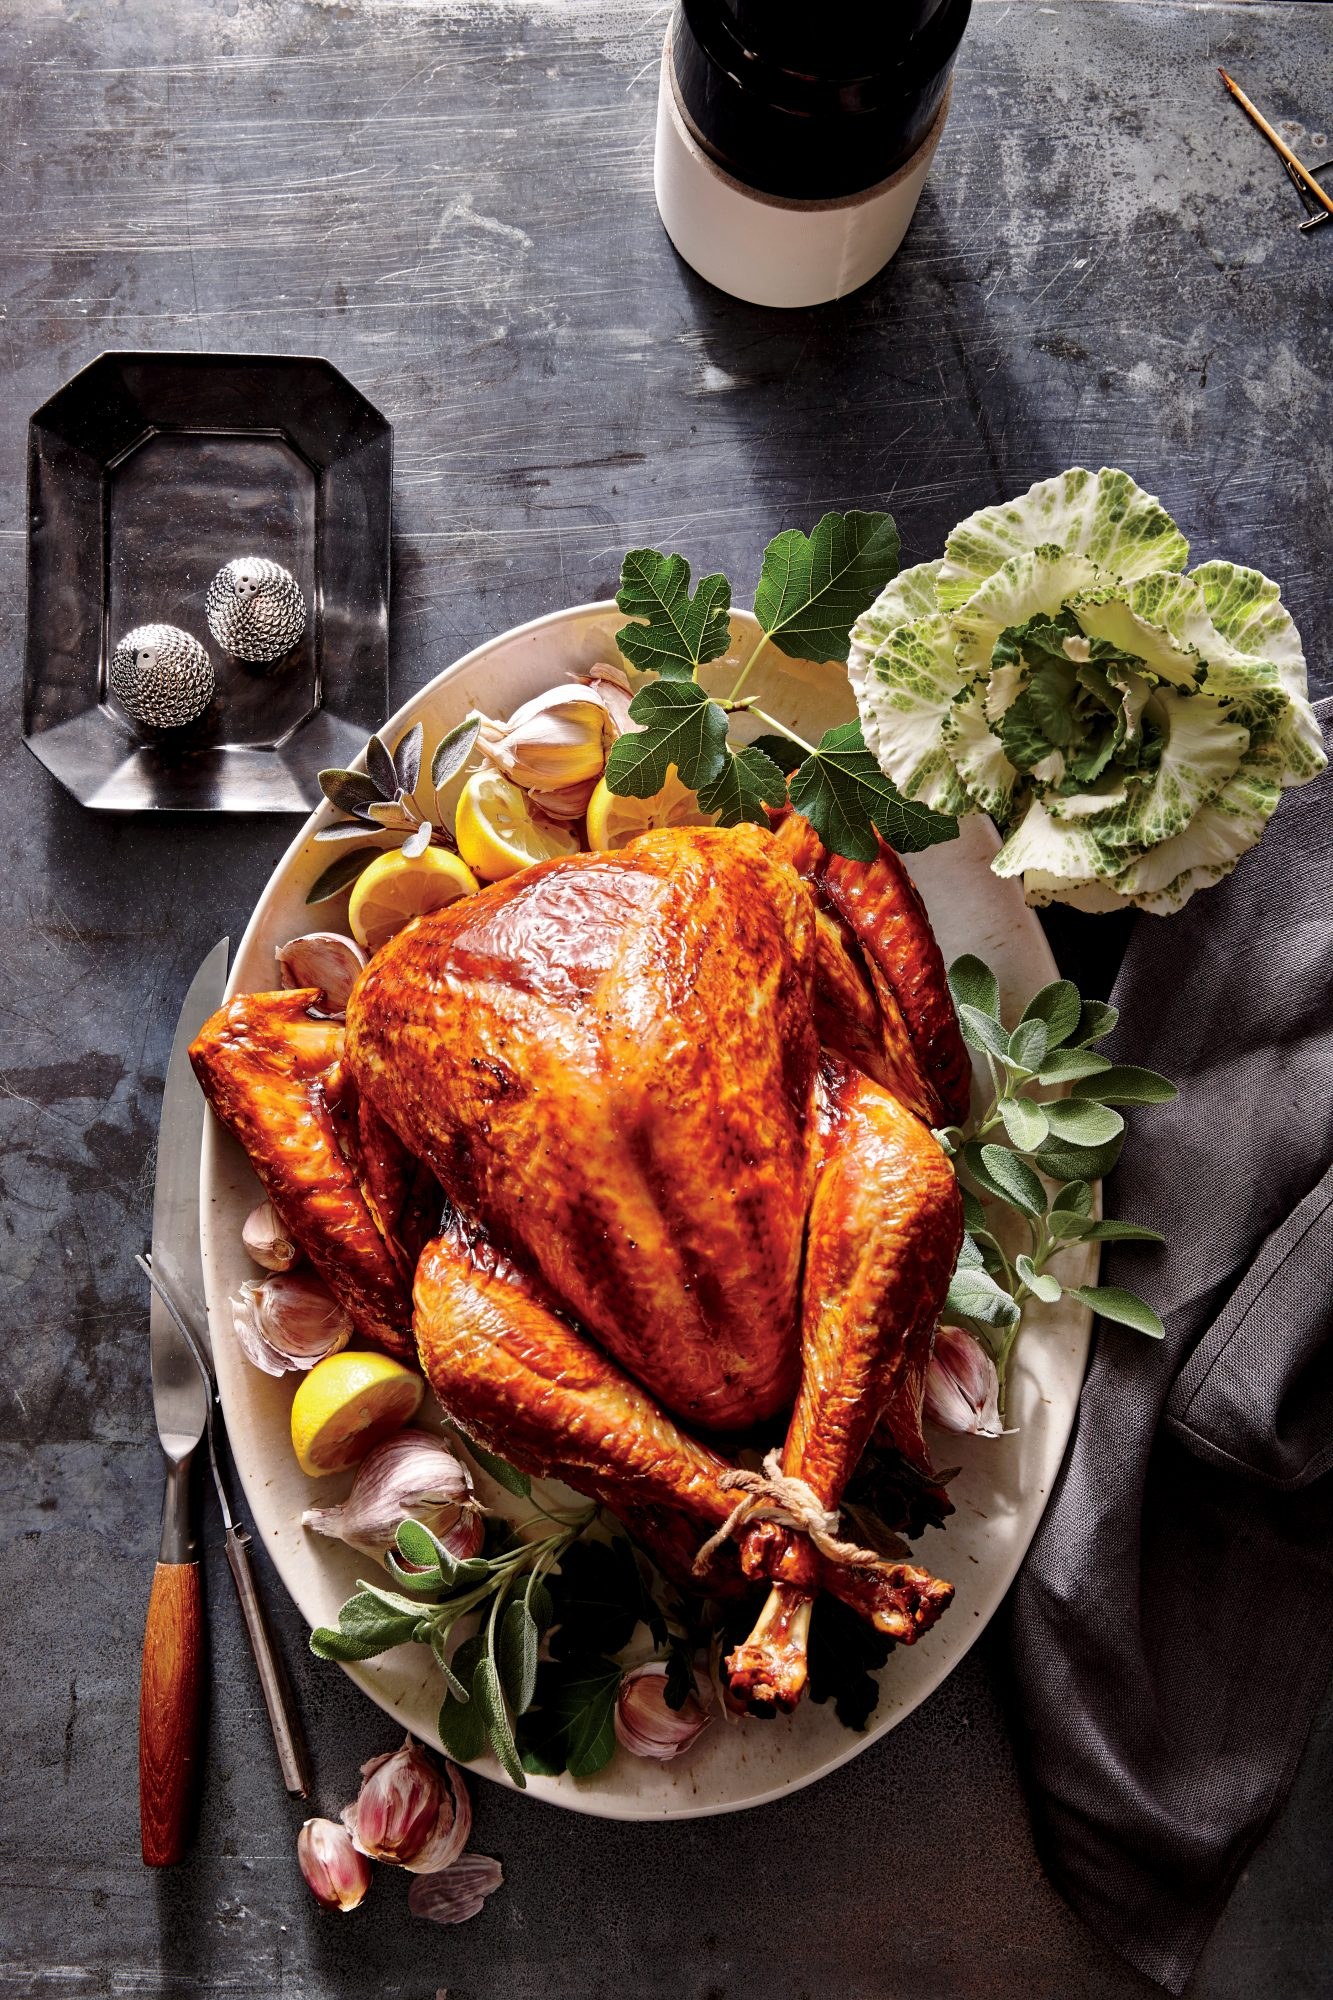 How Long Should I Roast a 20-Pound Turkey?